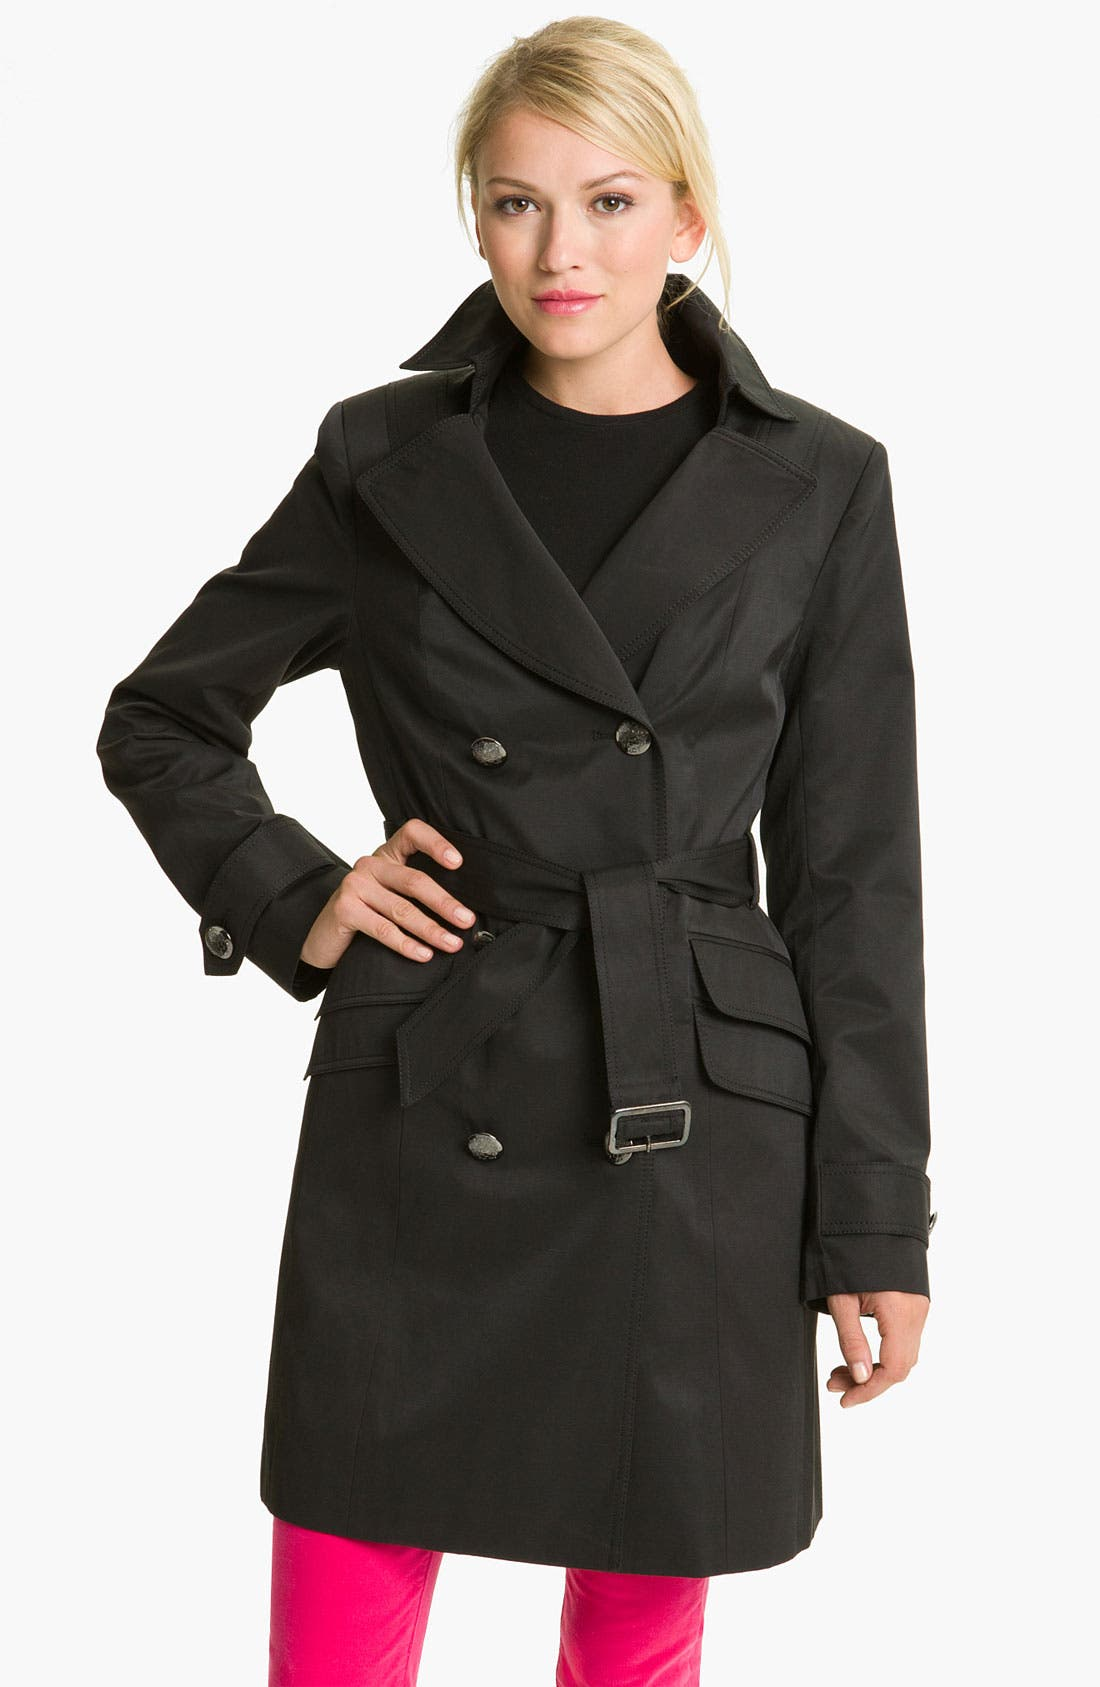 Alternate Image 1 Selected - Vince Camuto Double Pocket Belted Trench